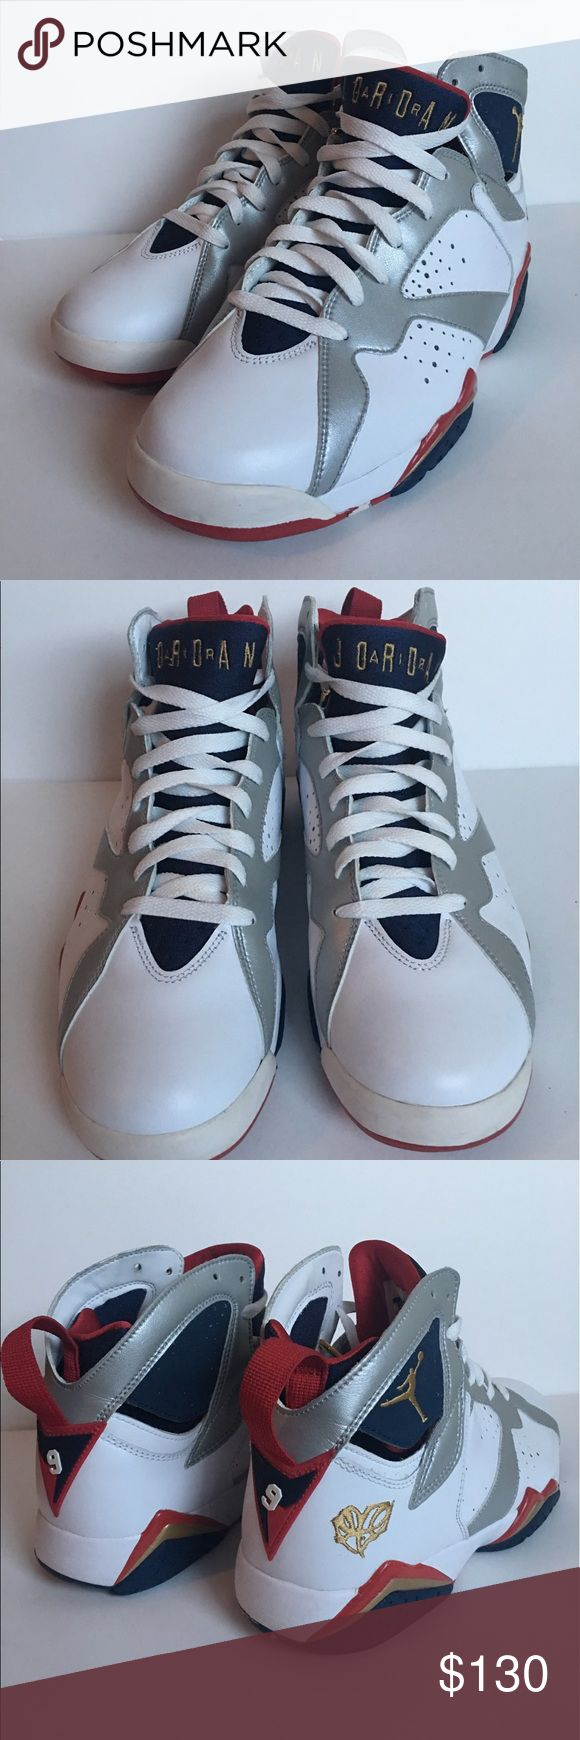 "Nike Air Jordan VII Olympics size 8.5 Nike Air Jordan VII ""For The Love Of The Game"" Olympics men's size 8.5. Excellent condition comes in Original box. Jordan Shoes Athletic Shoes"